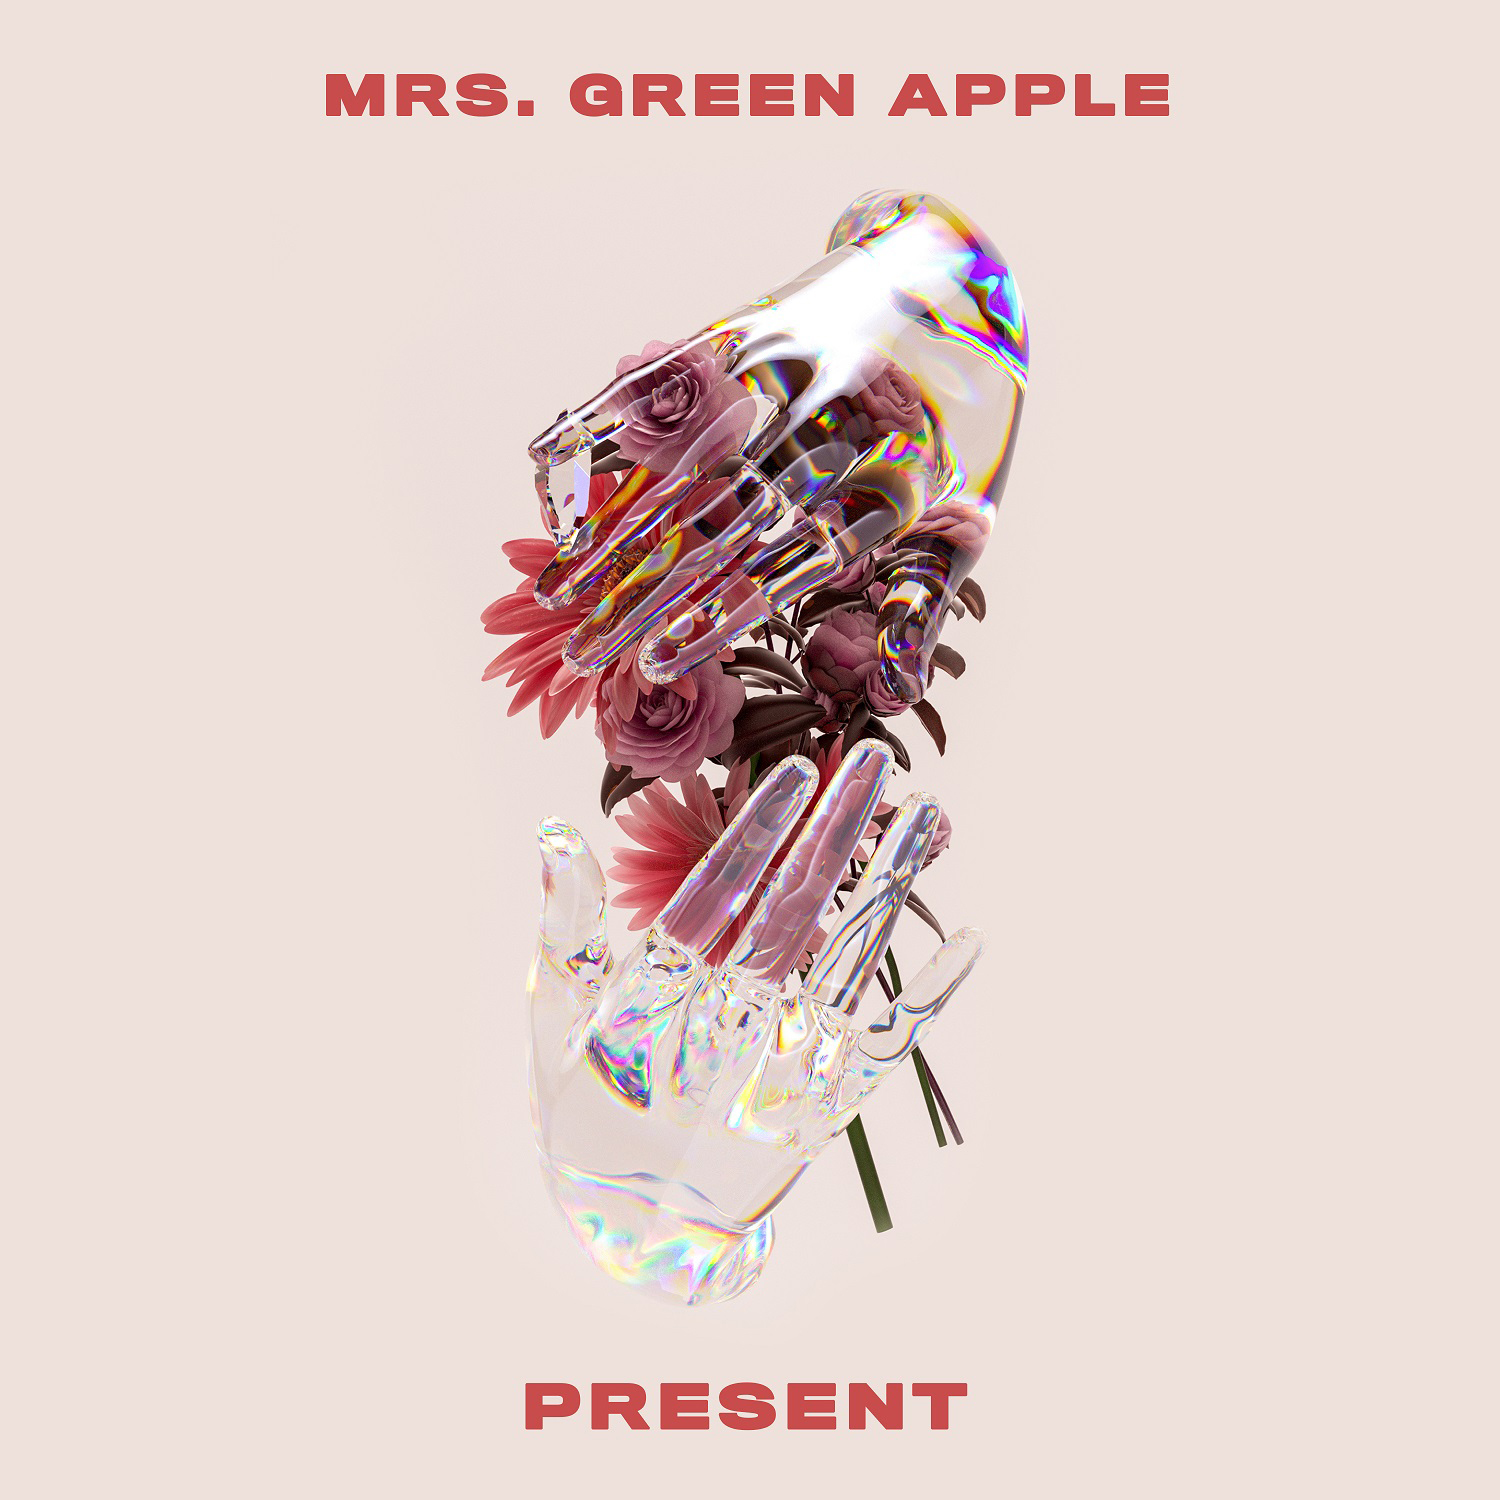 Mrs. GREEN APPLE 「PRESENT(English ver.)」